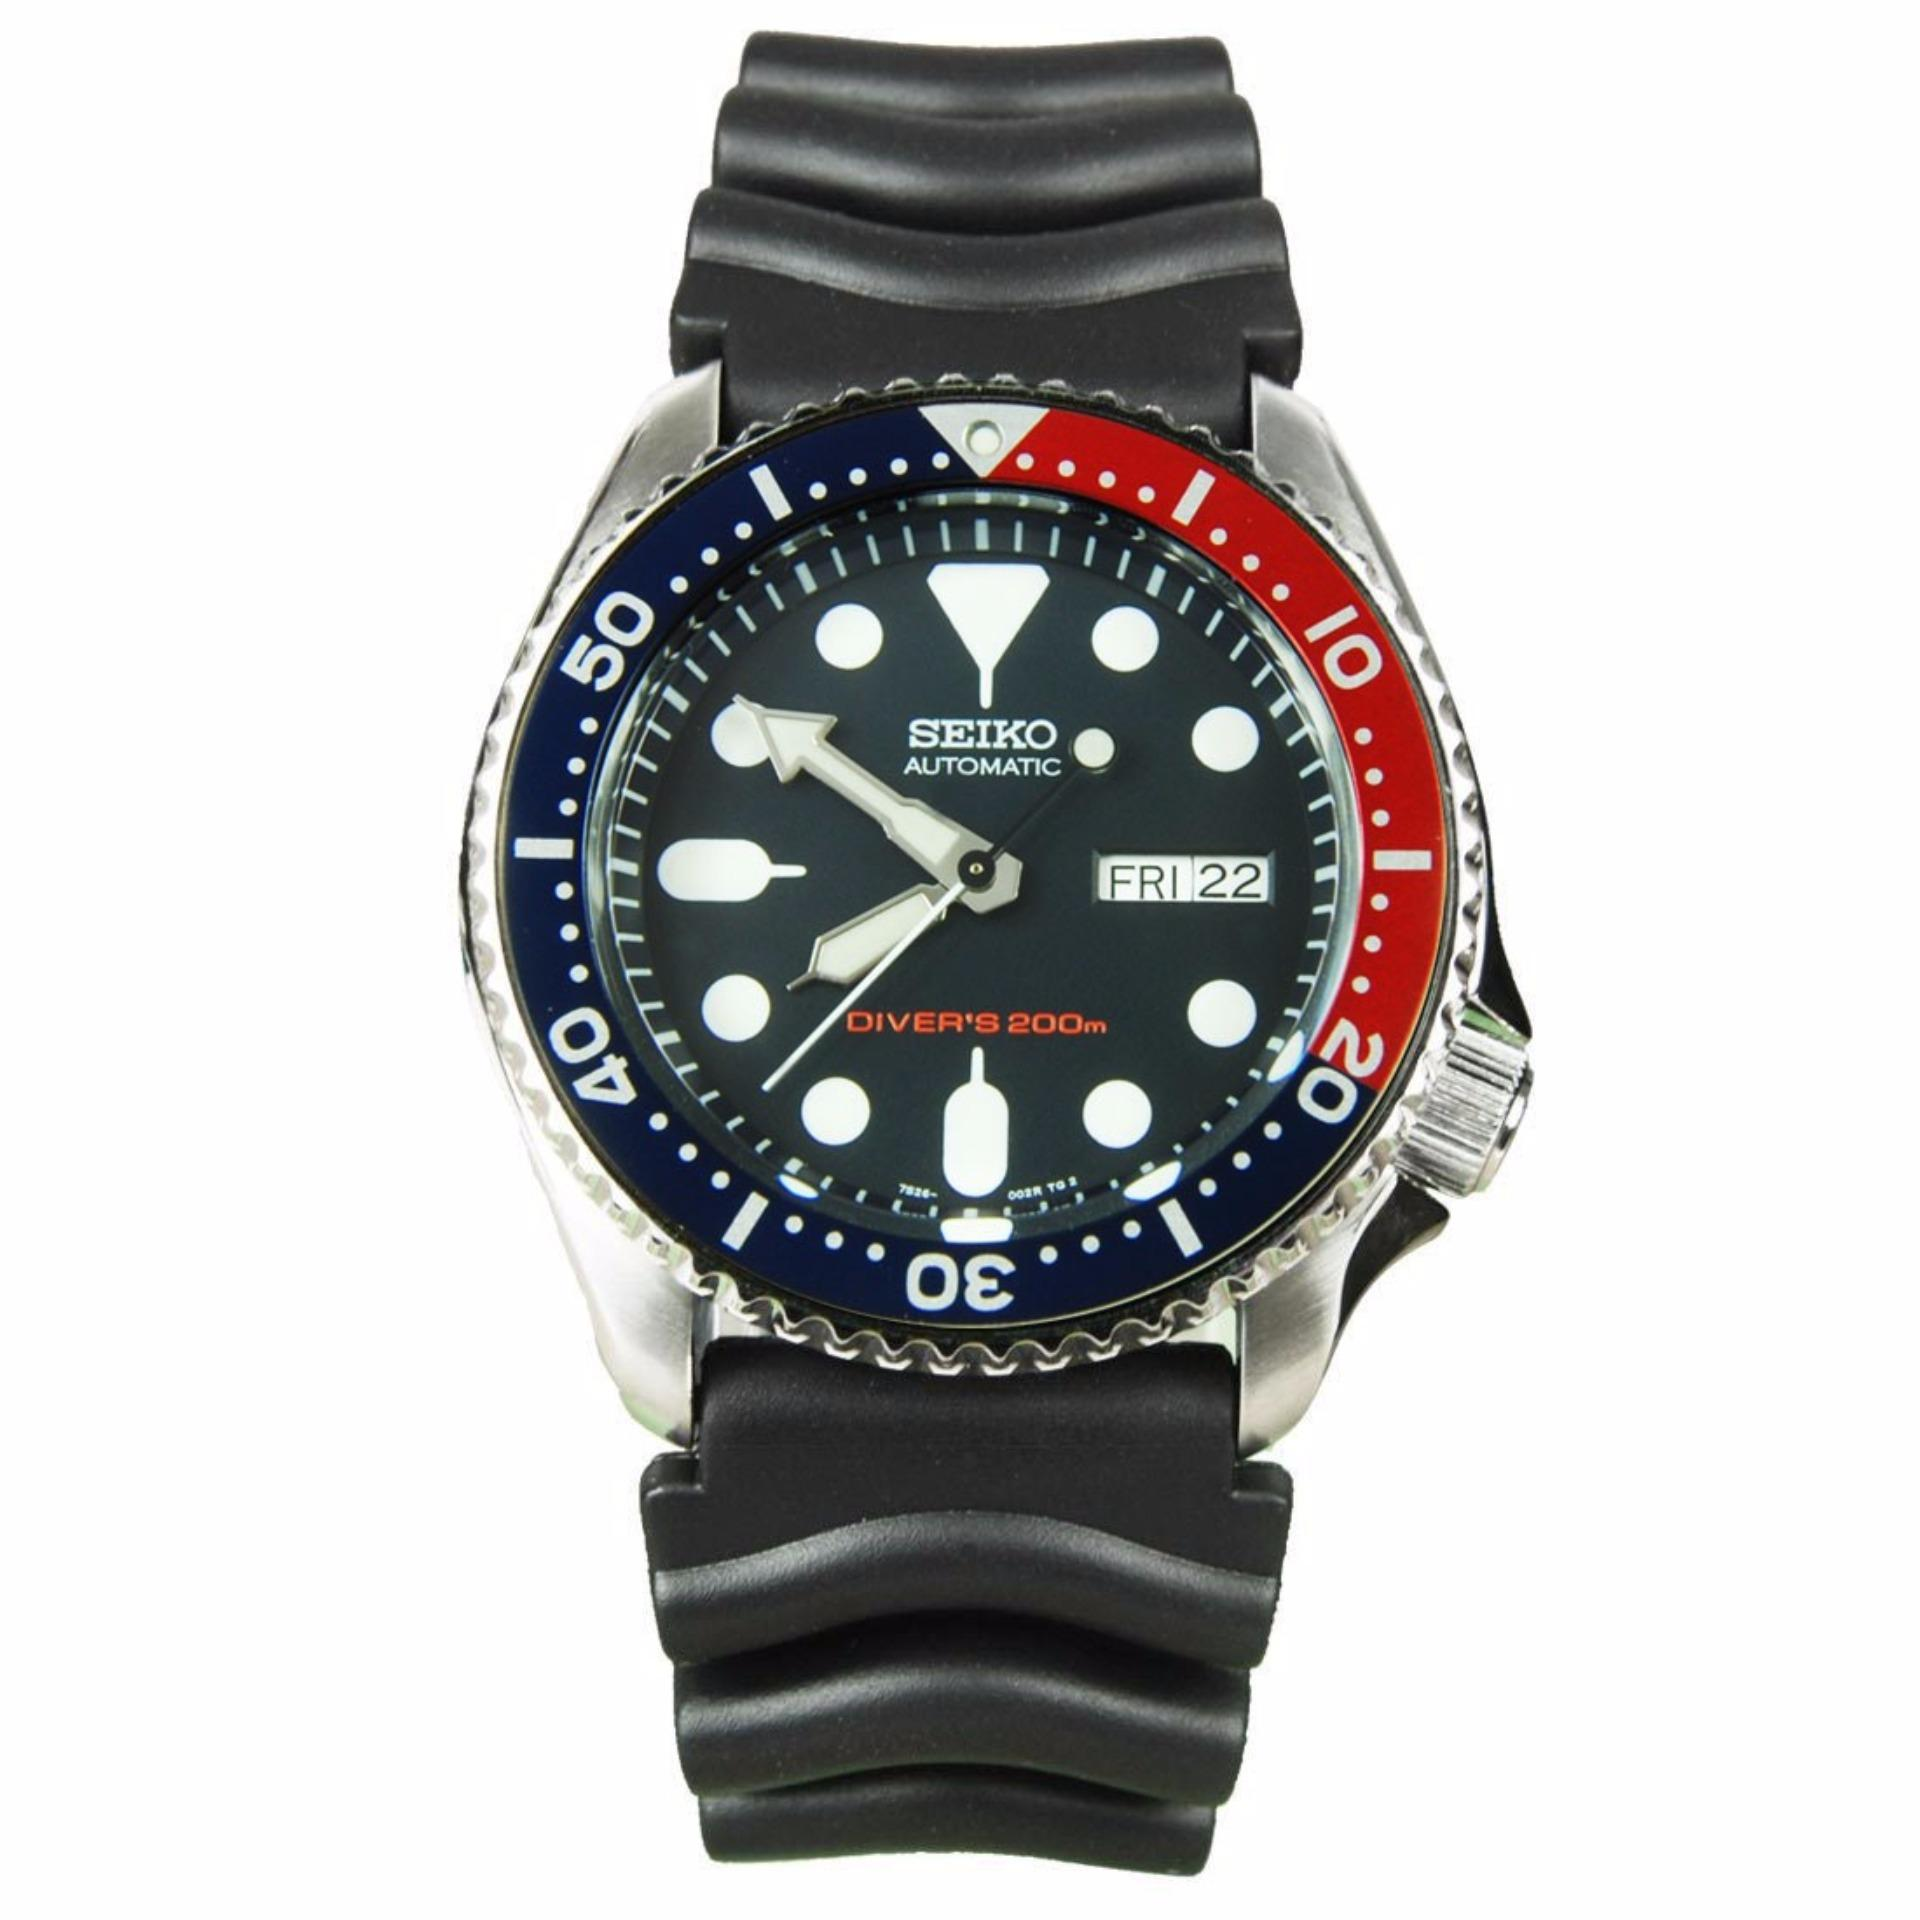 Seiko Watch Automatic Diver's Black Stainless-Steel Case Rubber Strap Mens SKX009K1